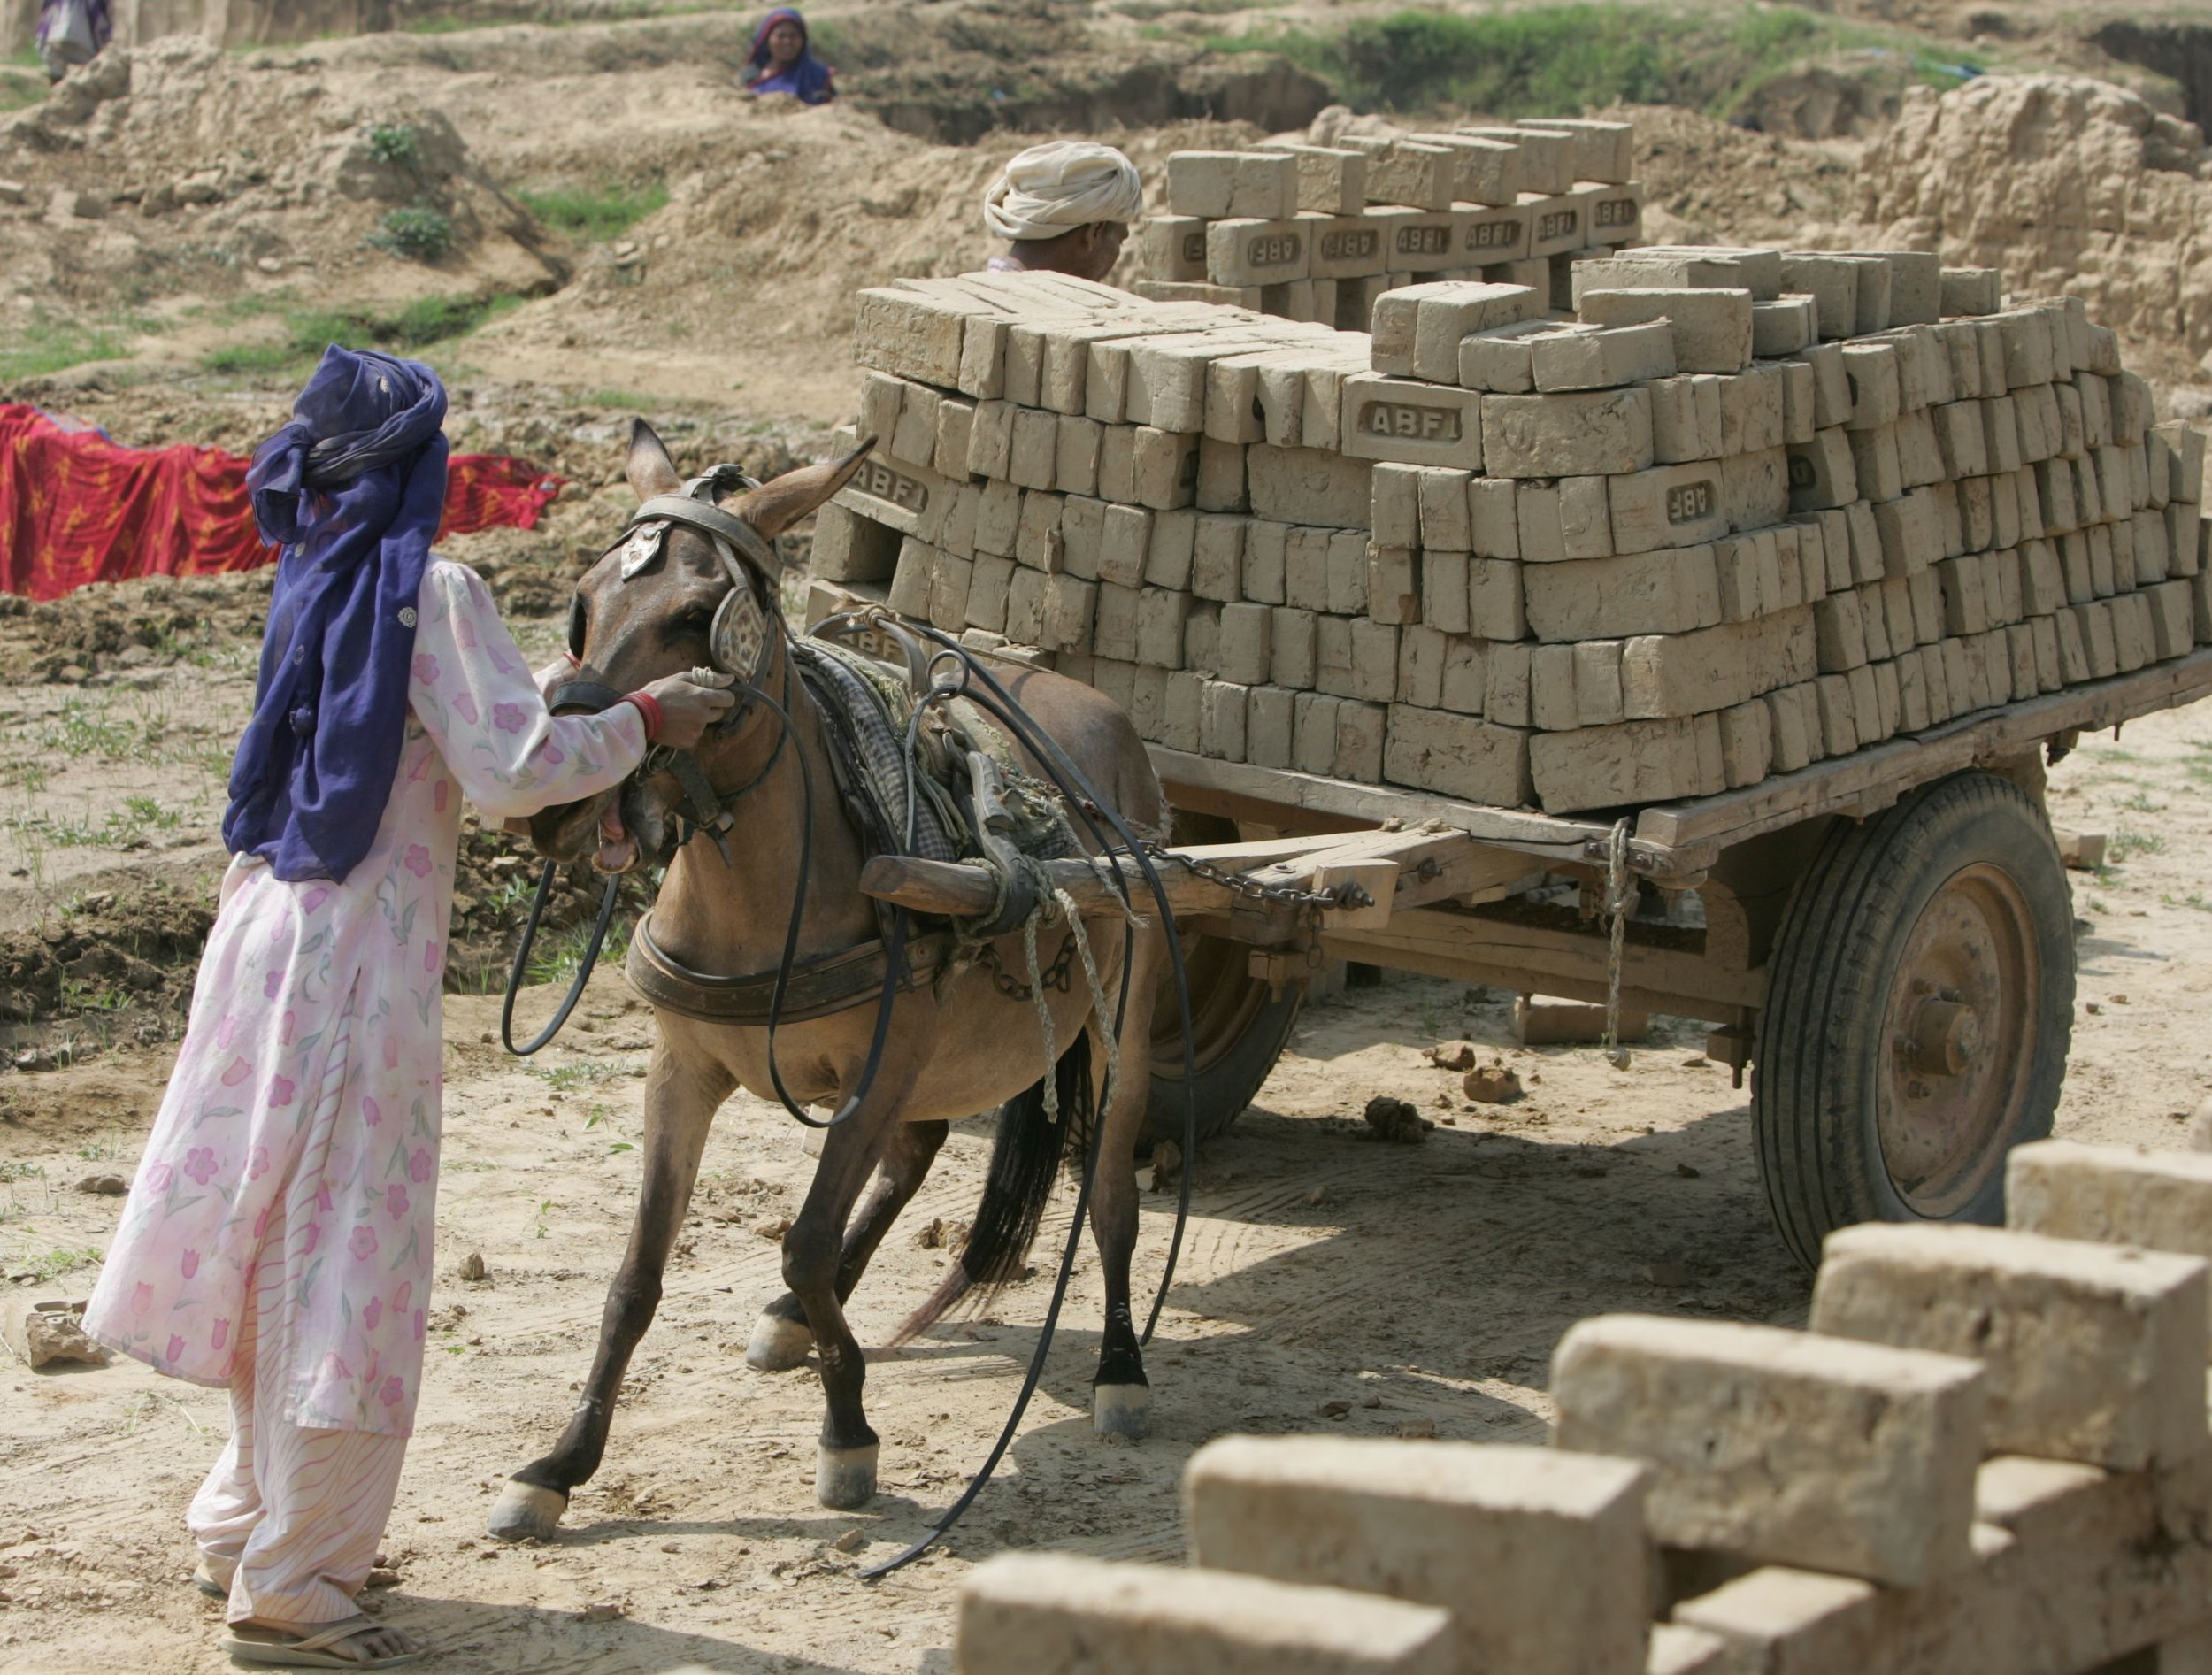 Horses and donkeys working in brick kilns are routinely made to haul 25-40 tons of bricks each day. www.BrookeUSA.org.jpg